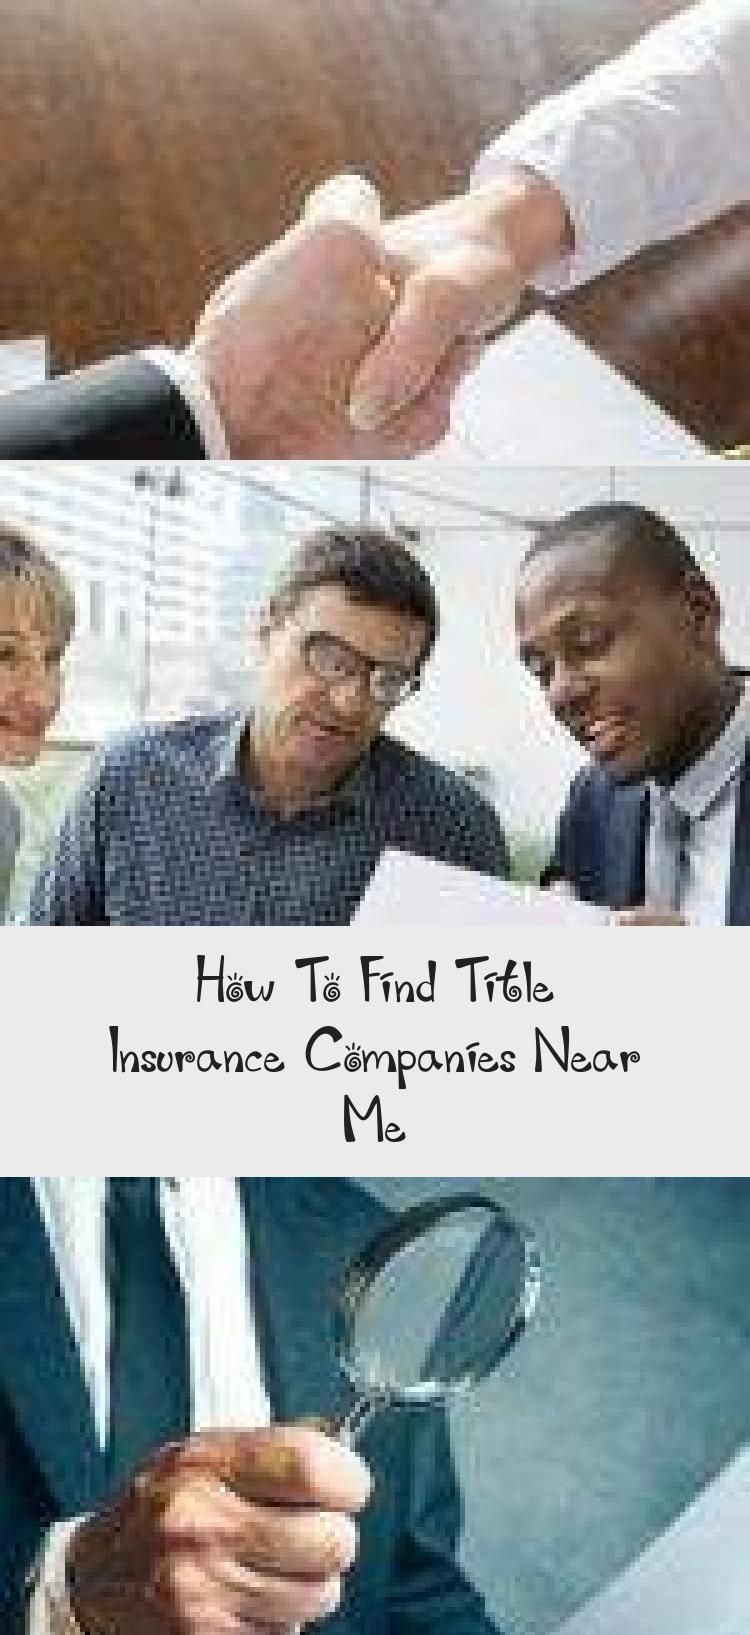 How To Find Title Insurance Companies Near Me in 2020